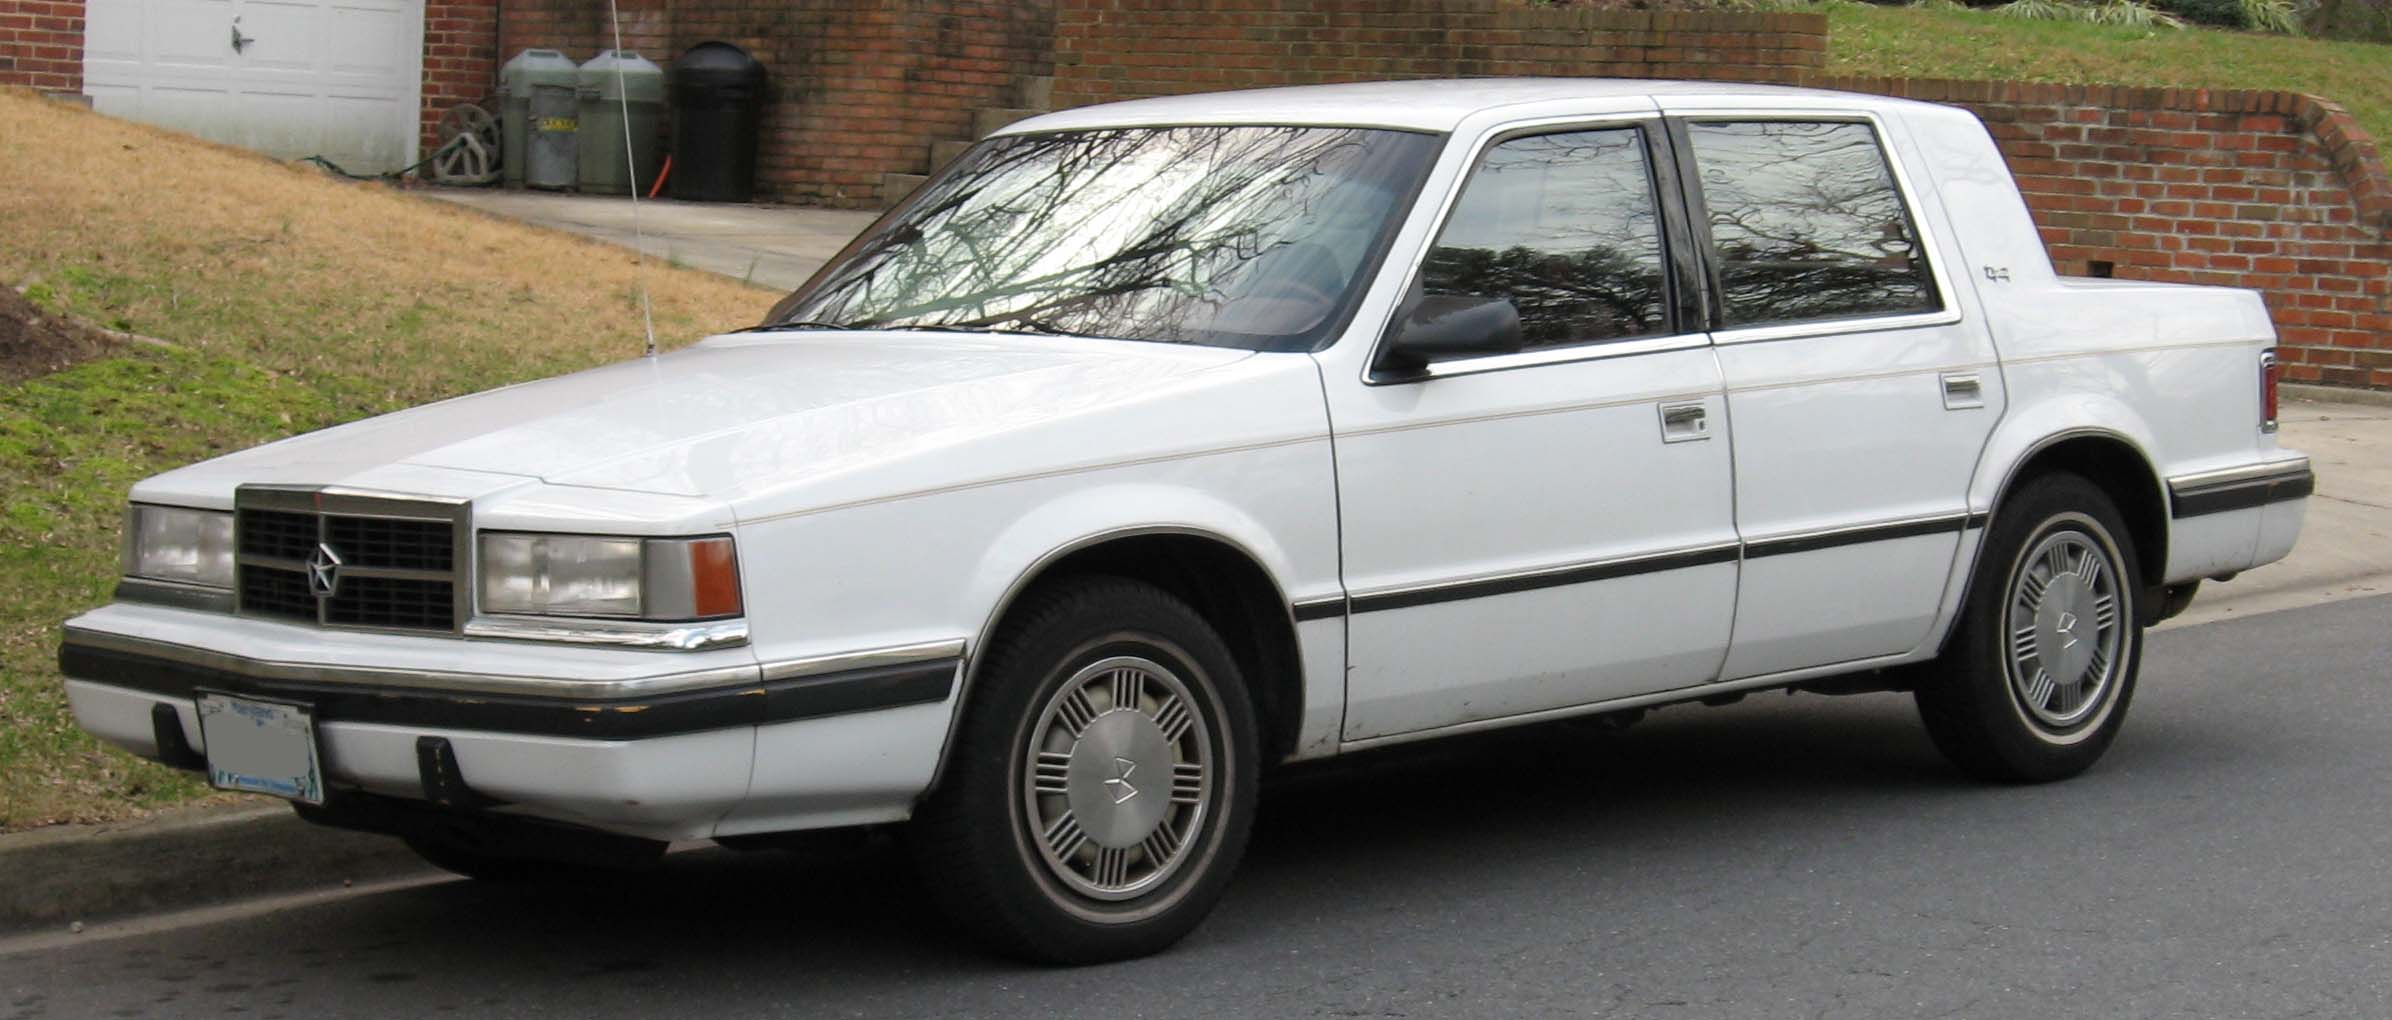 1988 dodge dynasty - get domain pictures - getdomainvids.com